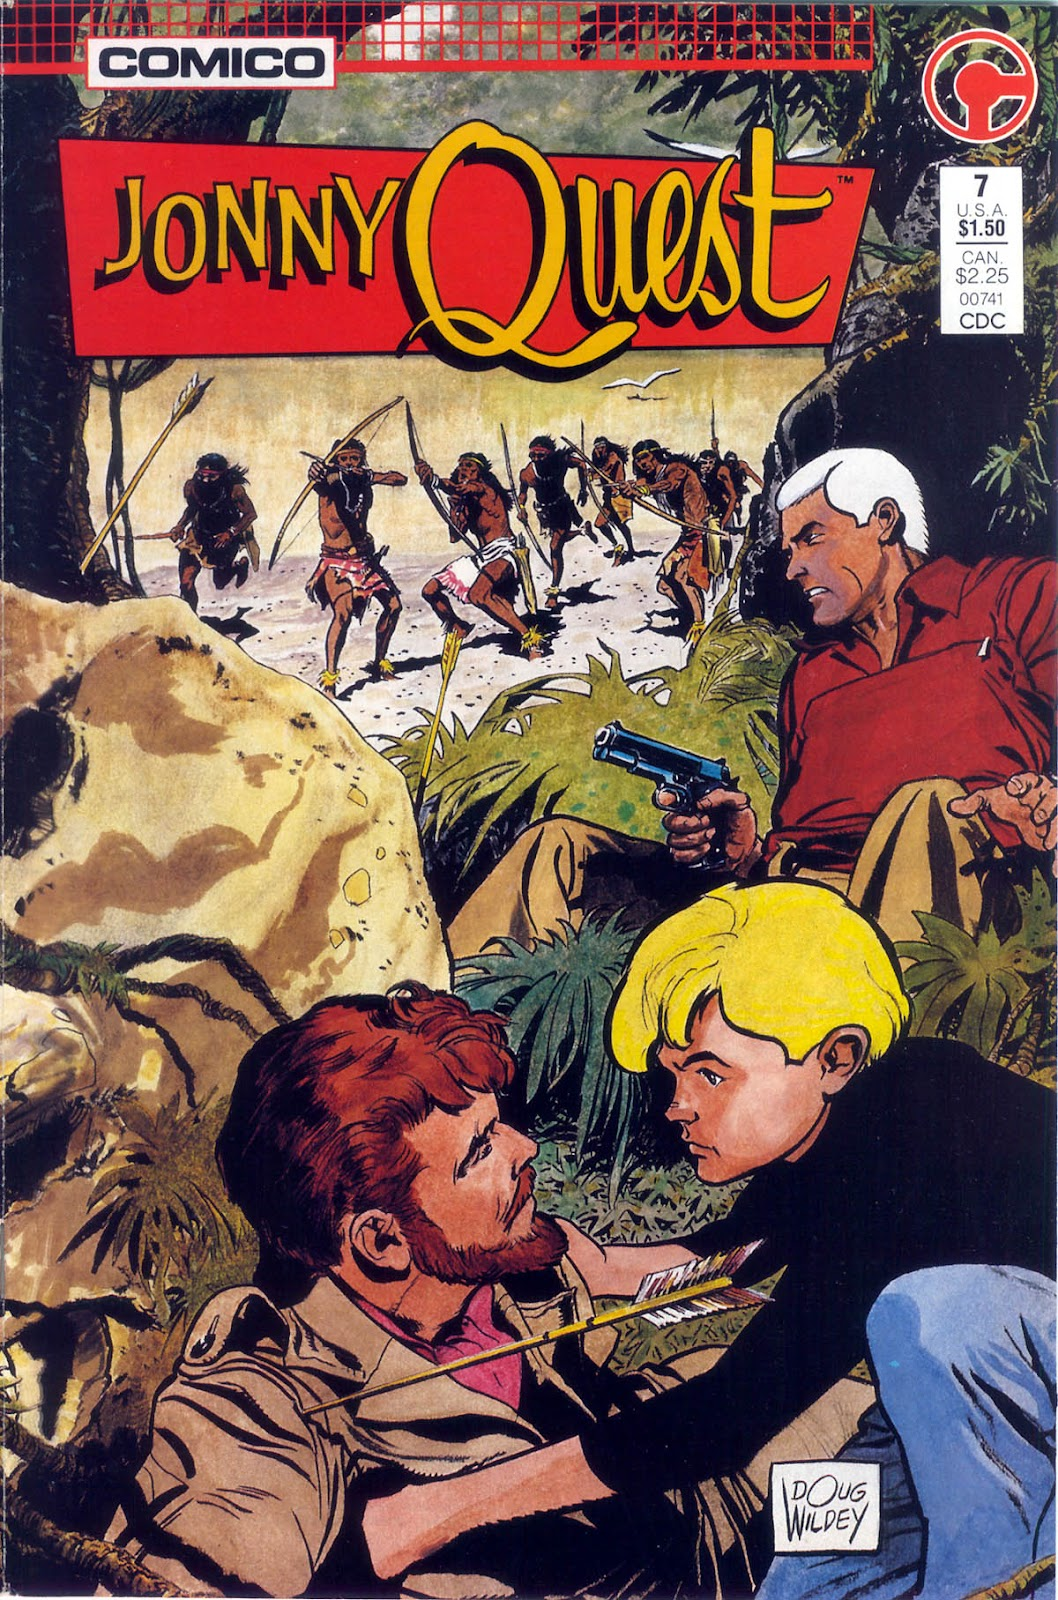 Jonny Quest (1986) issue 7 - Page 1